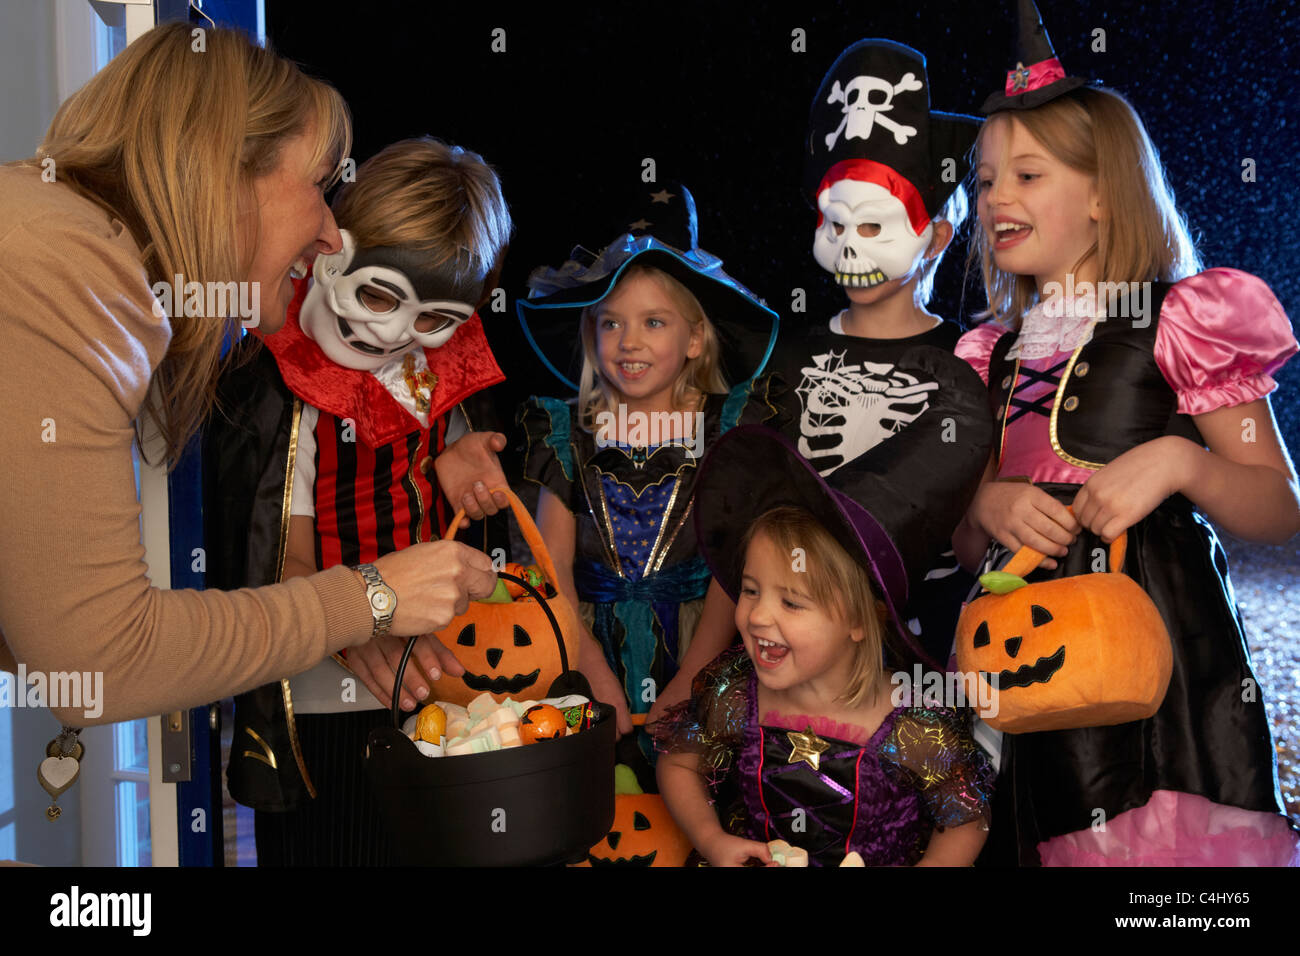 Happy Halloween party with children trick or treating - Stock Image